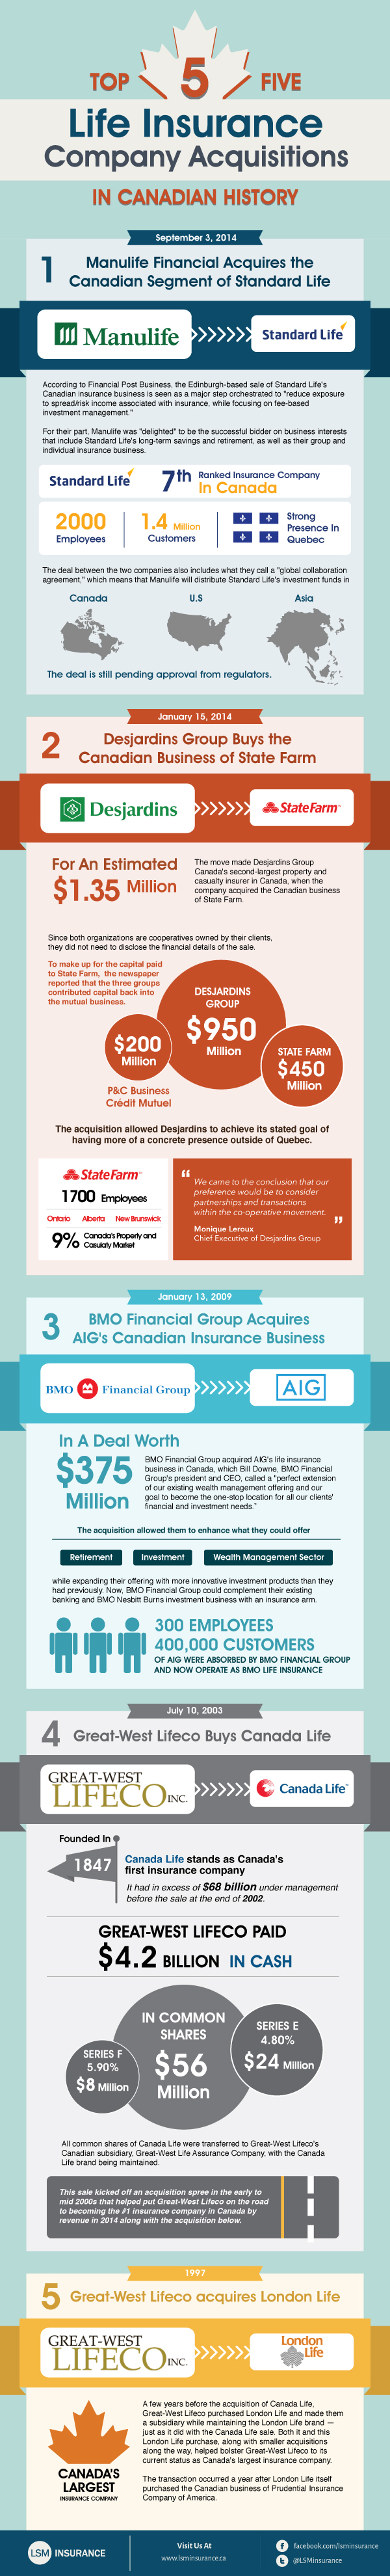 Top 5 Life Insurance Company Acquisitions in Canadian History